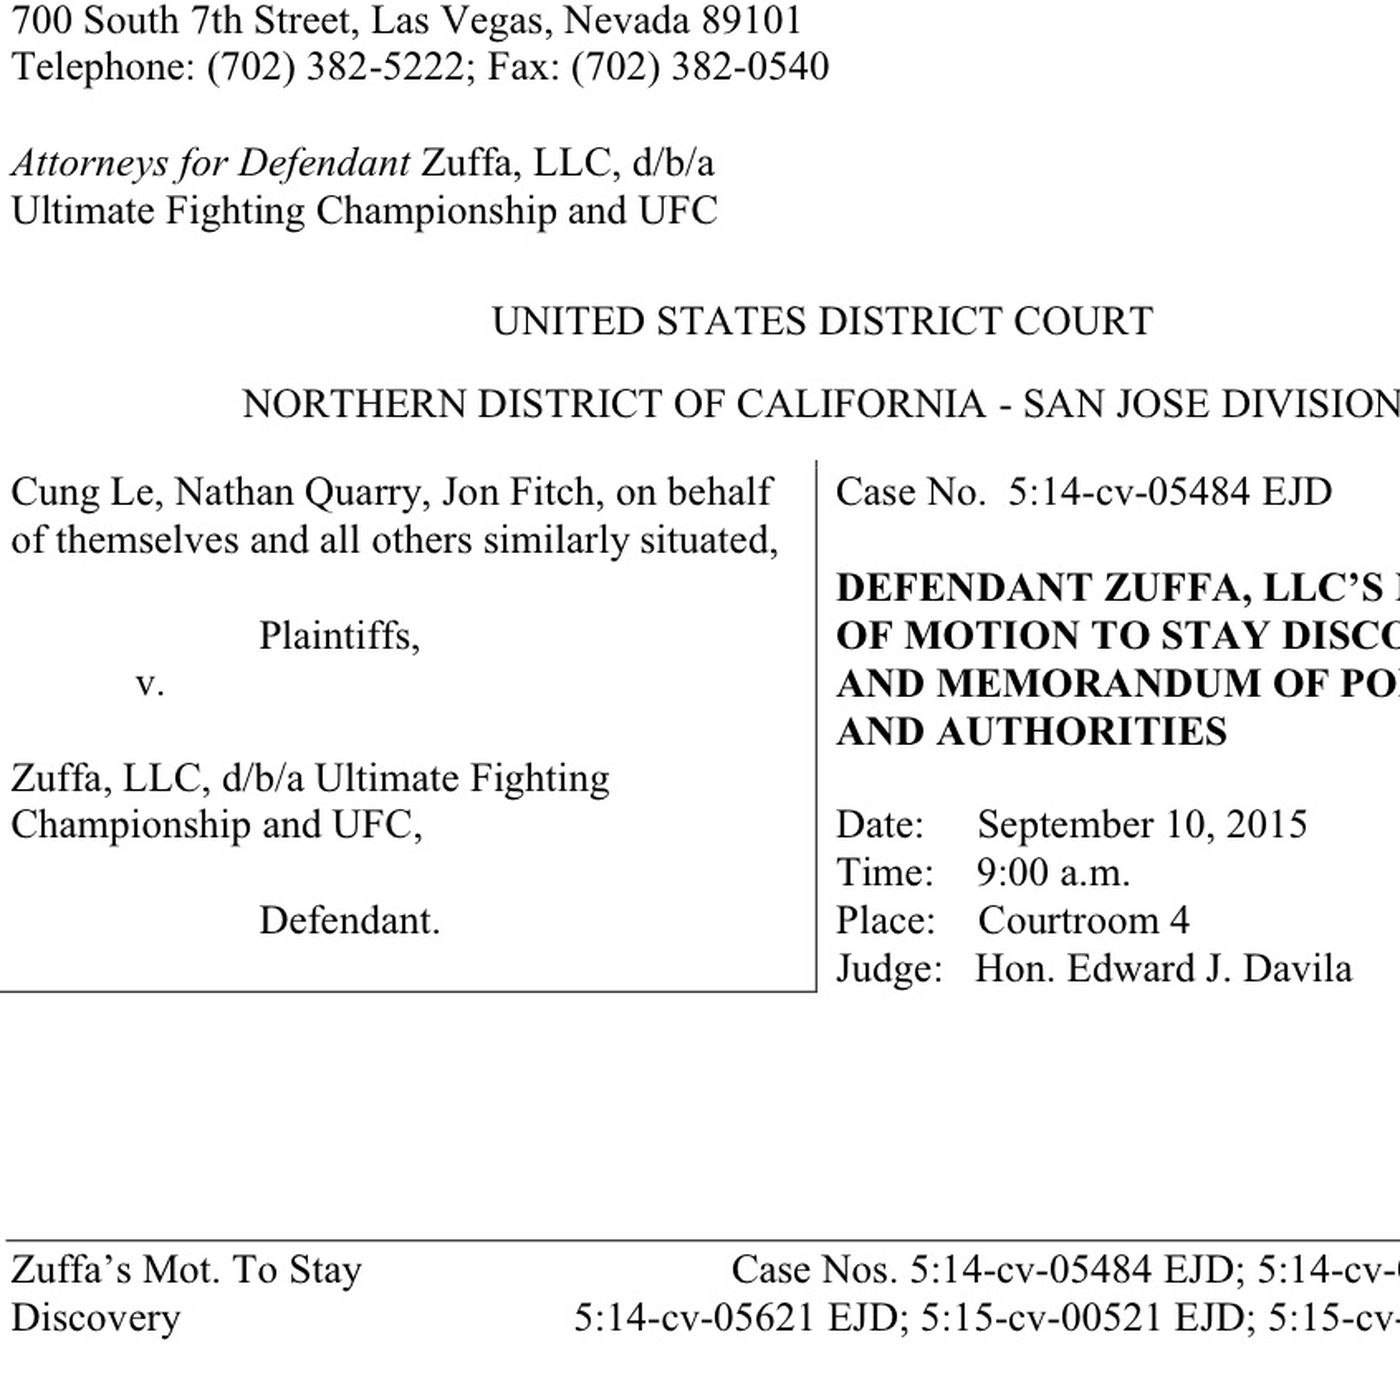 Zuffa files motion to stay discovery of '15 years of Zuffa's